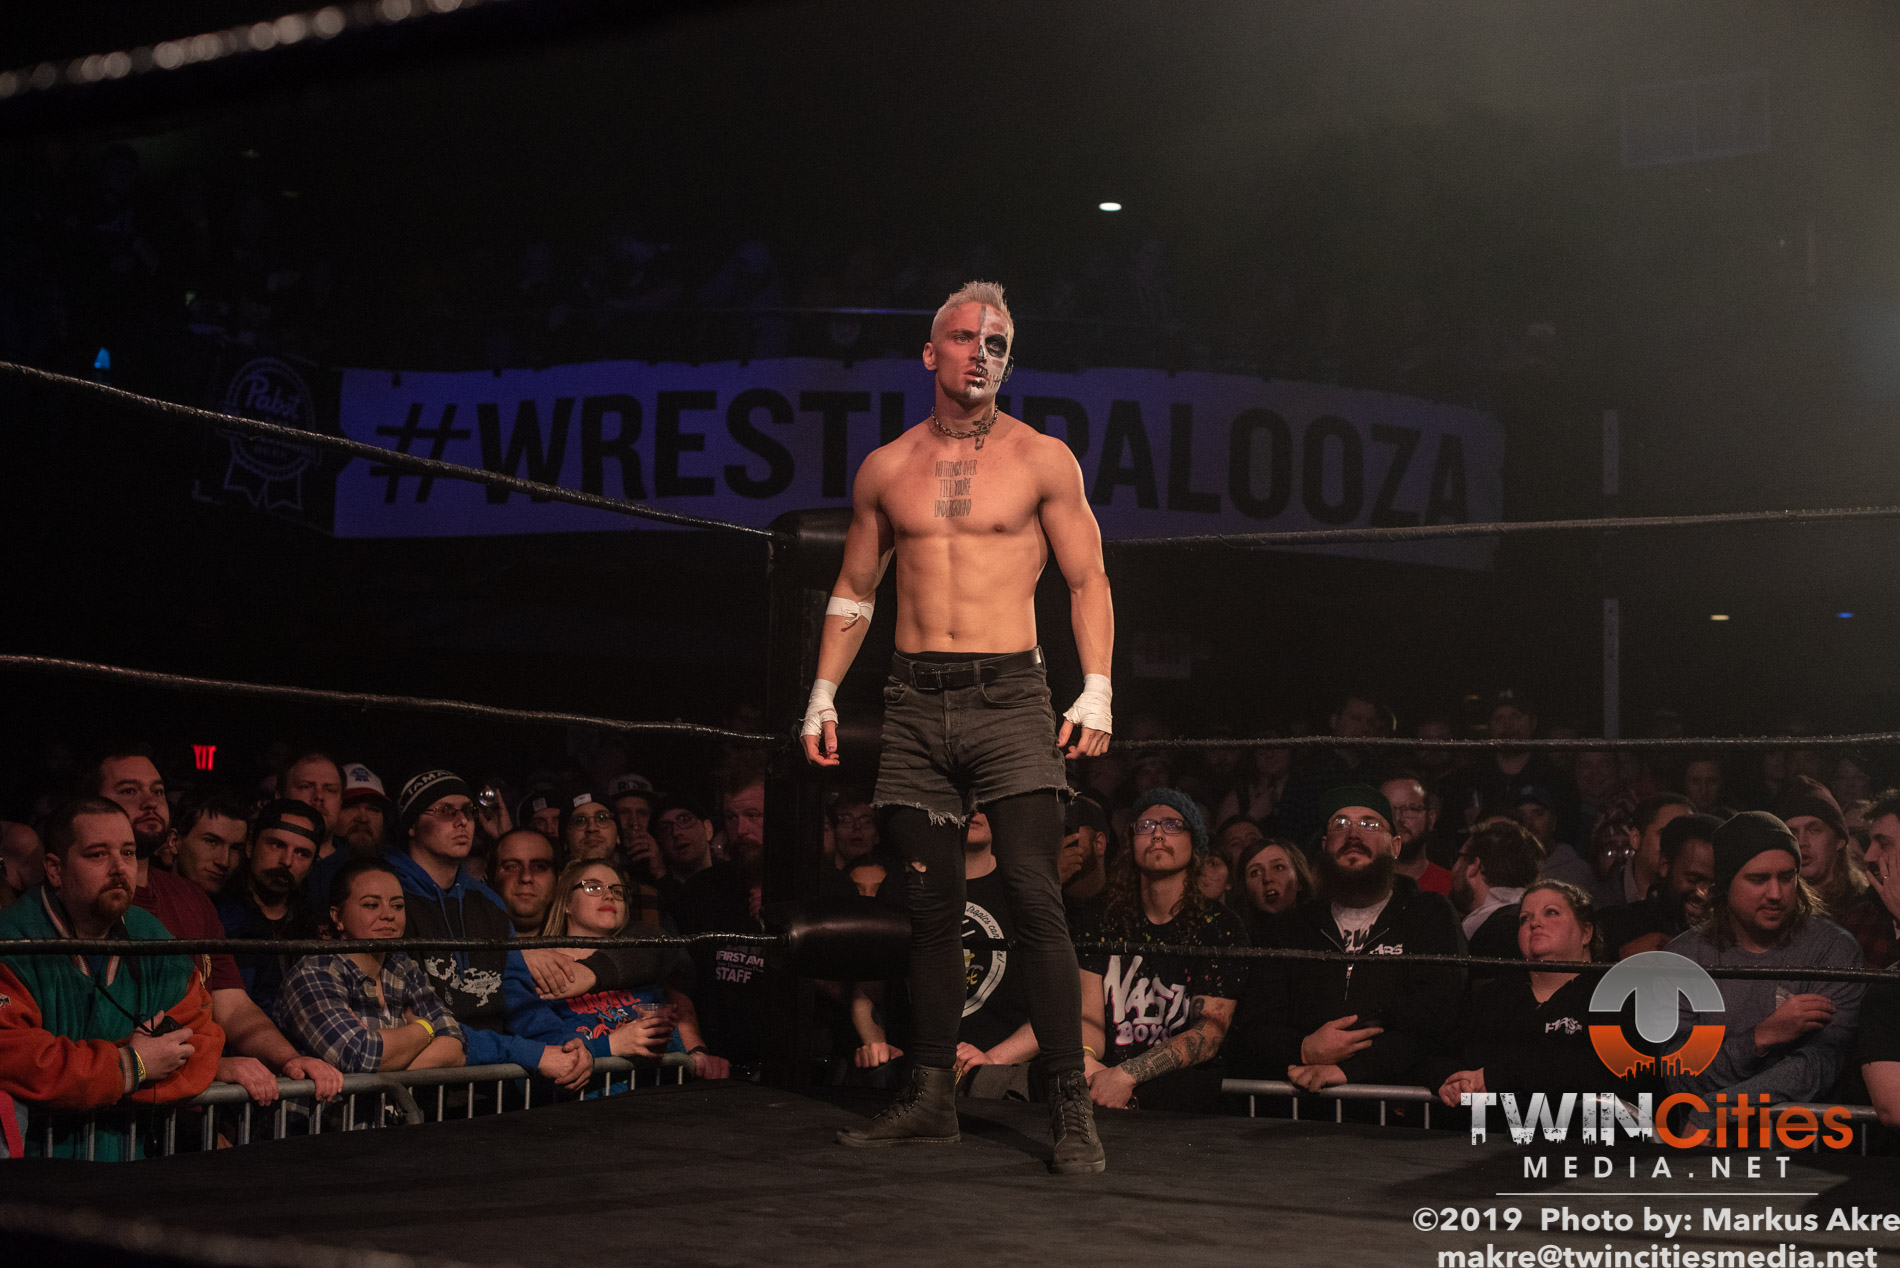 Wrestlepalooza - Match 5-3